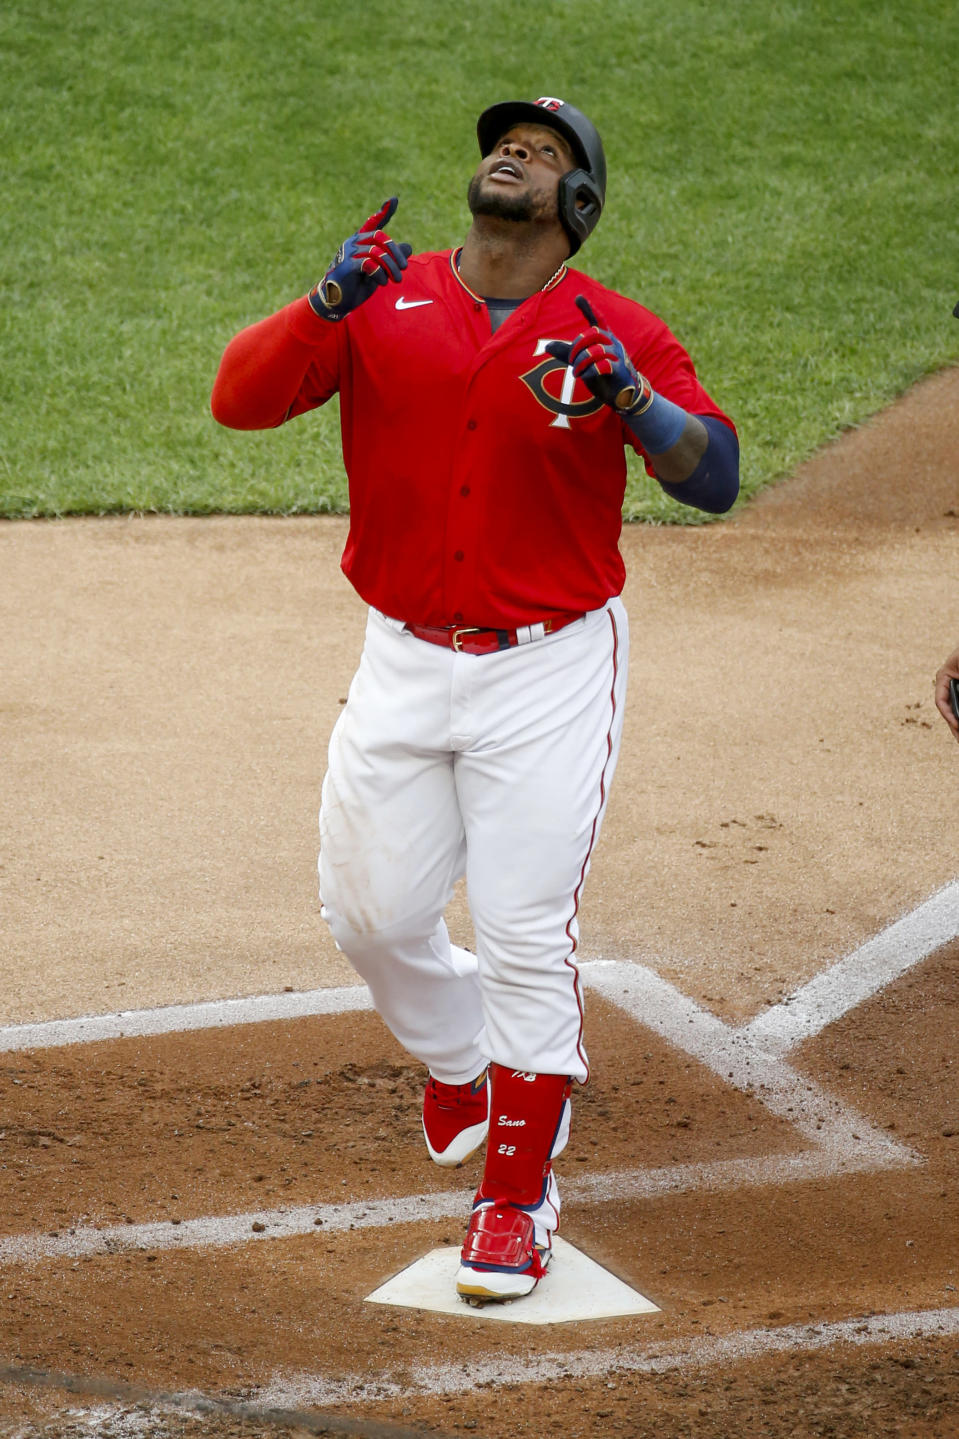 Minnesota Twins' Miguel Sano celebrates his solo home run against the Cleveland Indians in the third inning of a baseball game Saturday, Aug. 1, 2020, in Minneapolis. (AP Photo/Bruce Kluckhohn)